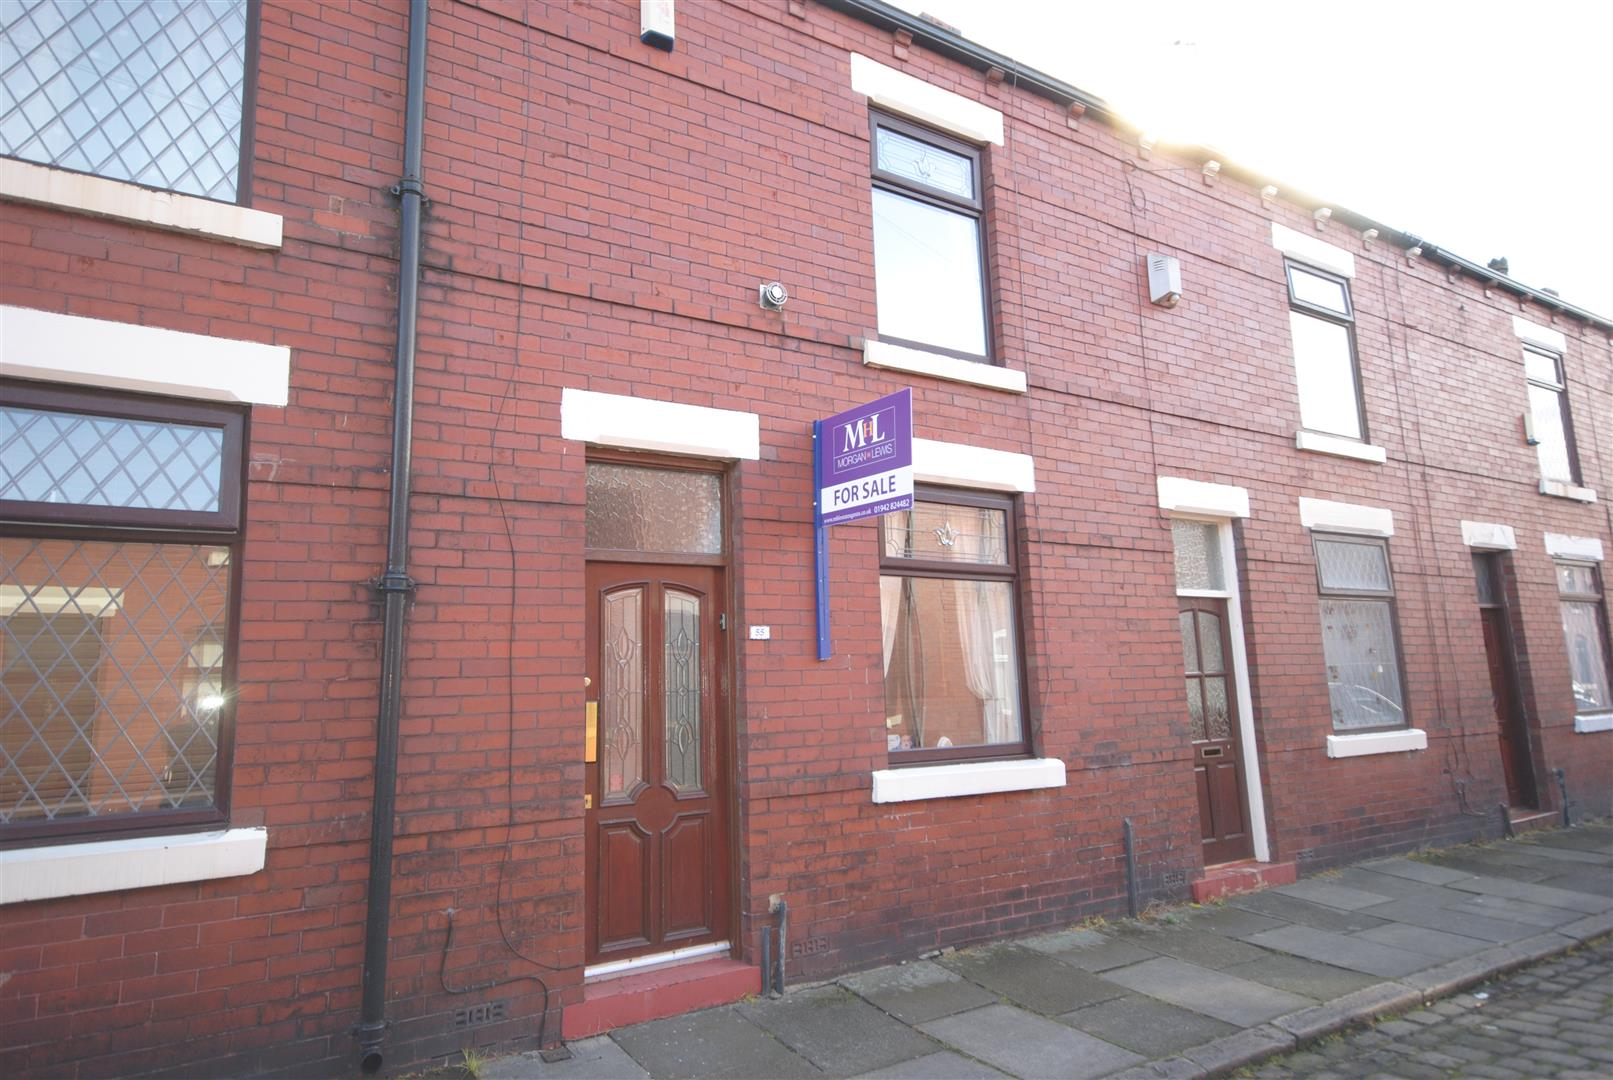 3 Bedrooms Terraced House for sale in Bird Street, Ince, Wigan